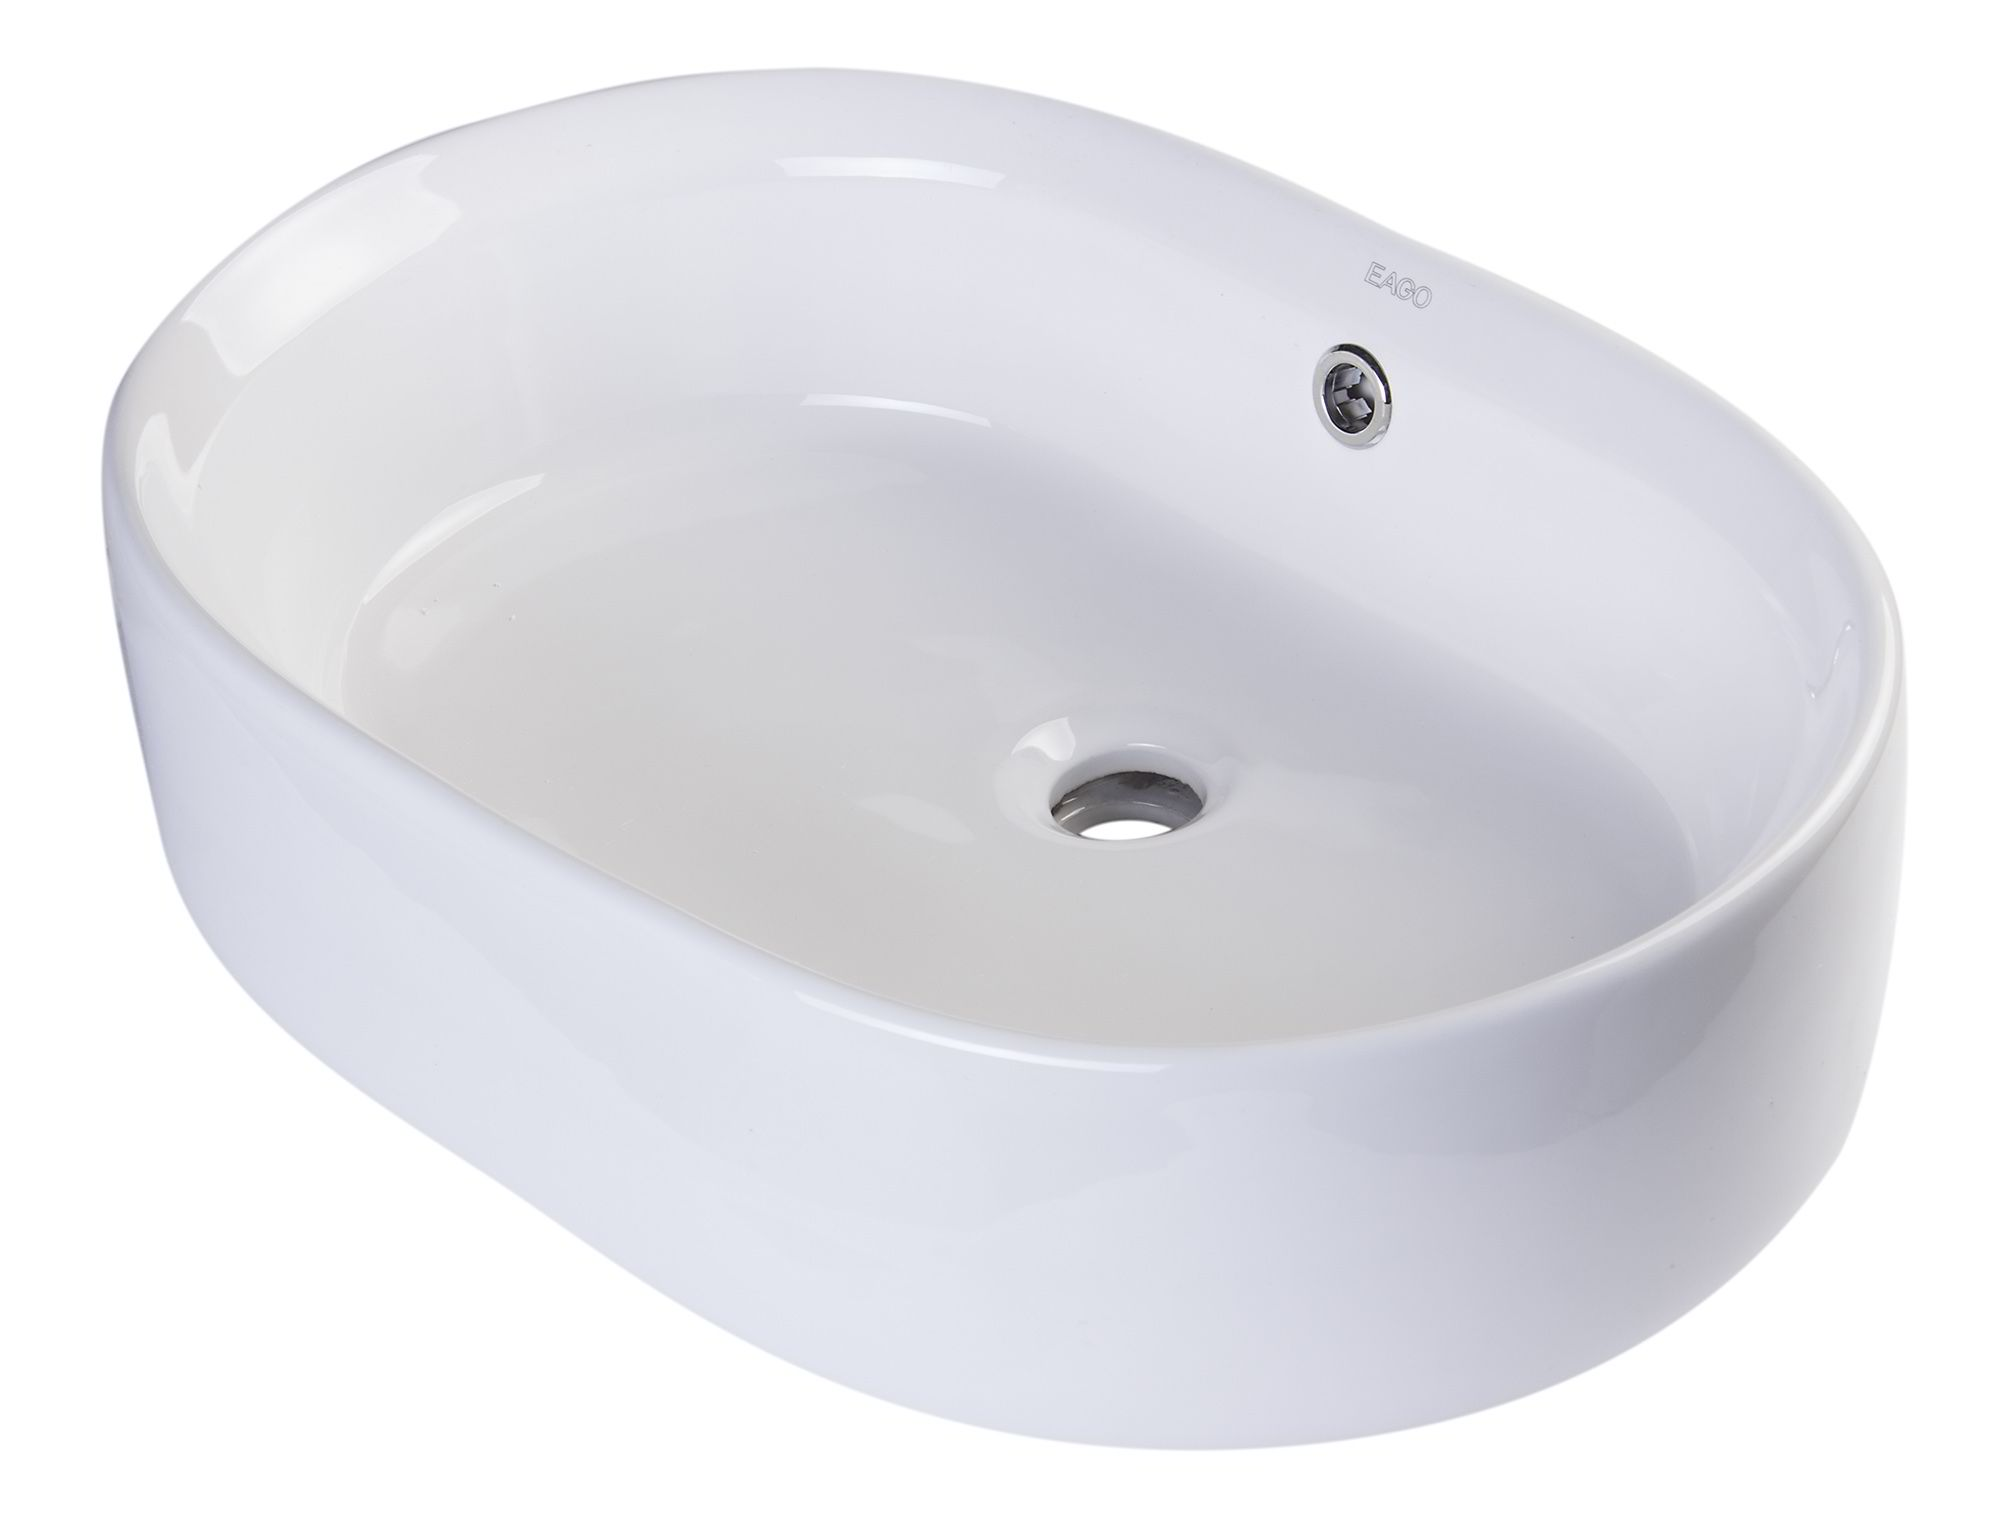 "EAGO BA132 22"" OVAL CERAMIC ABOVE MOUNT BASIN VESSEL SINK"